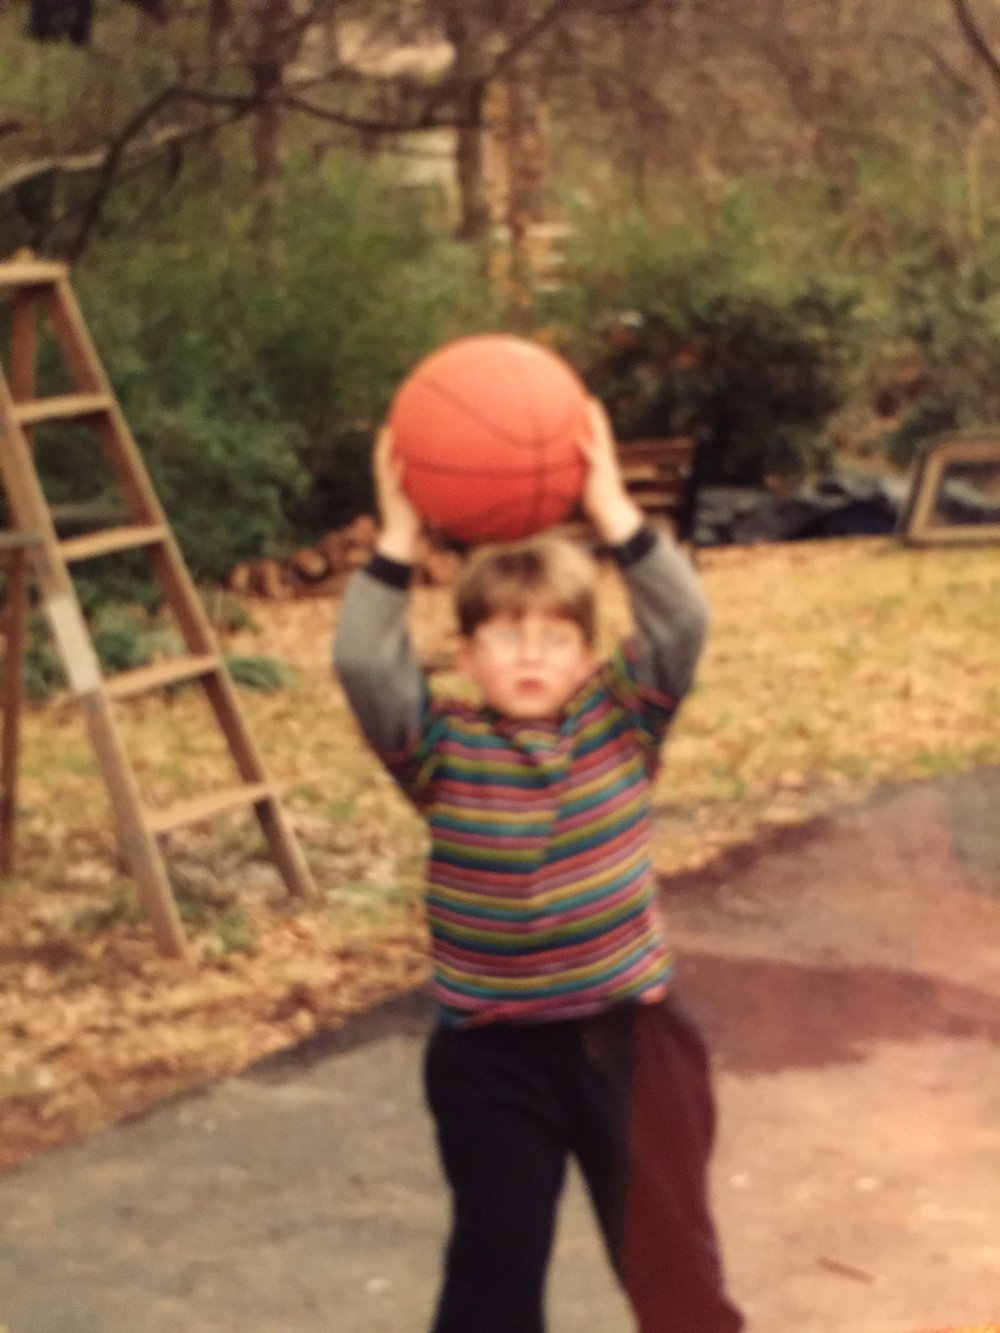 As A Kid, I Only Had One Dream... To Become An Athelte - I Loved Basketball!